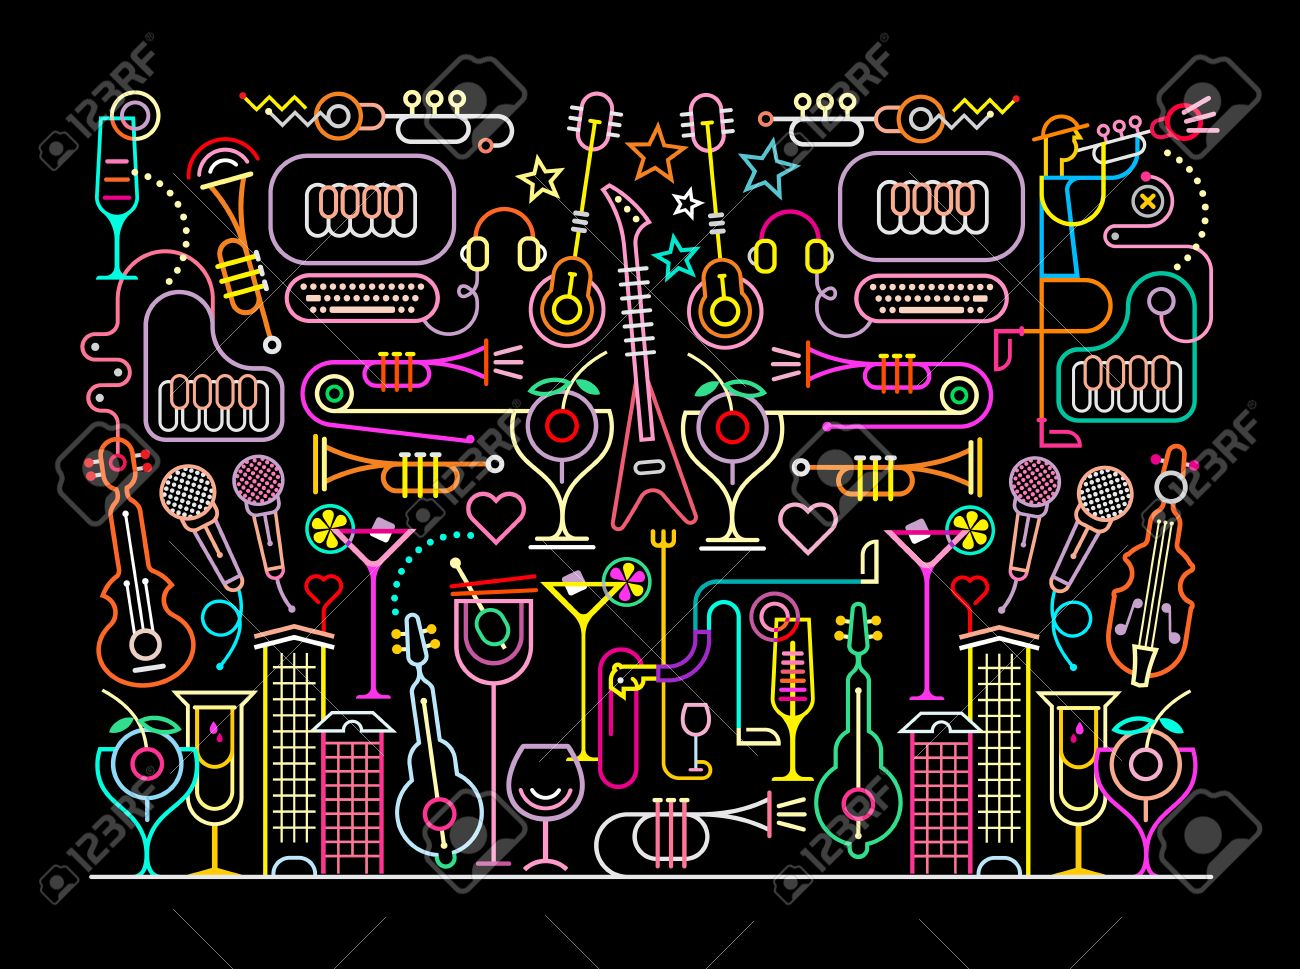 Neon colors on a black background Nightclub Cocktail Party illustration. Abstract art composition. - 53447416